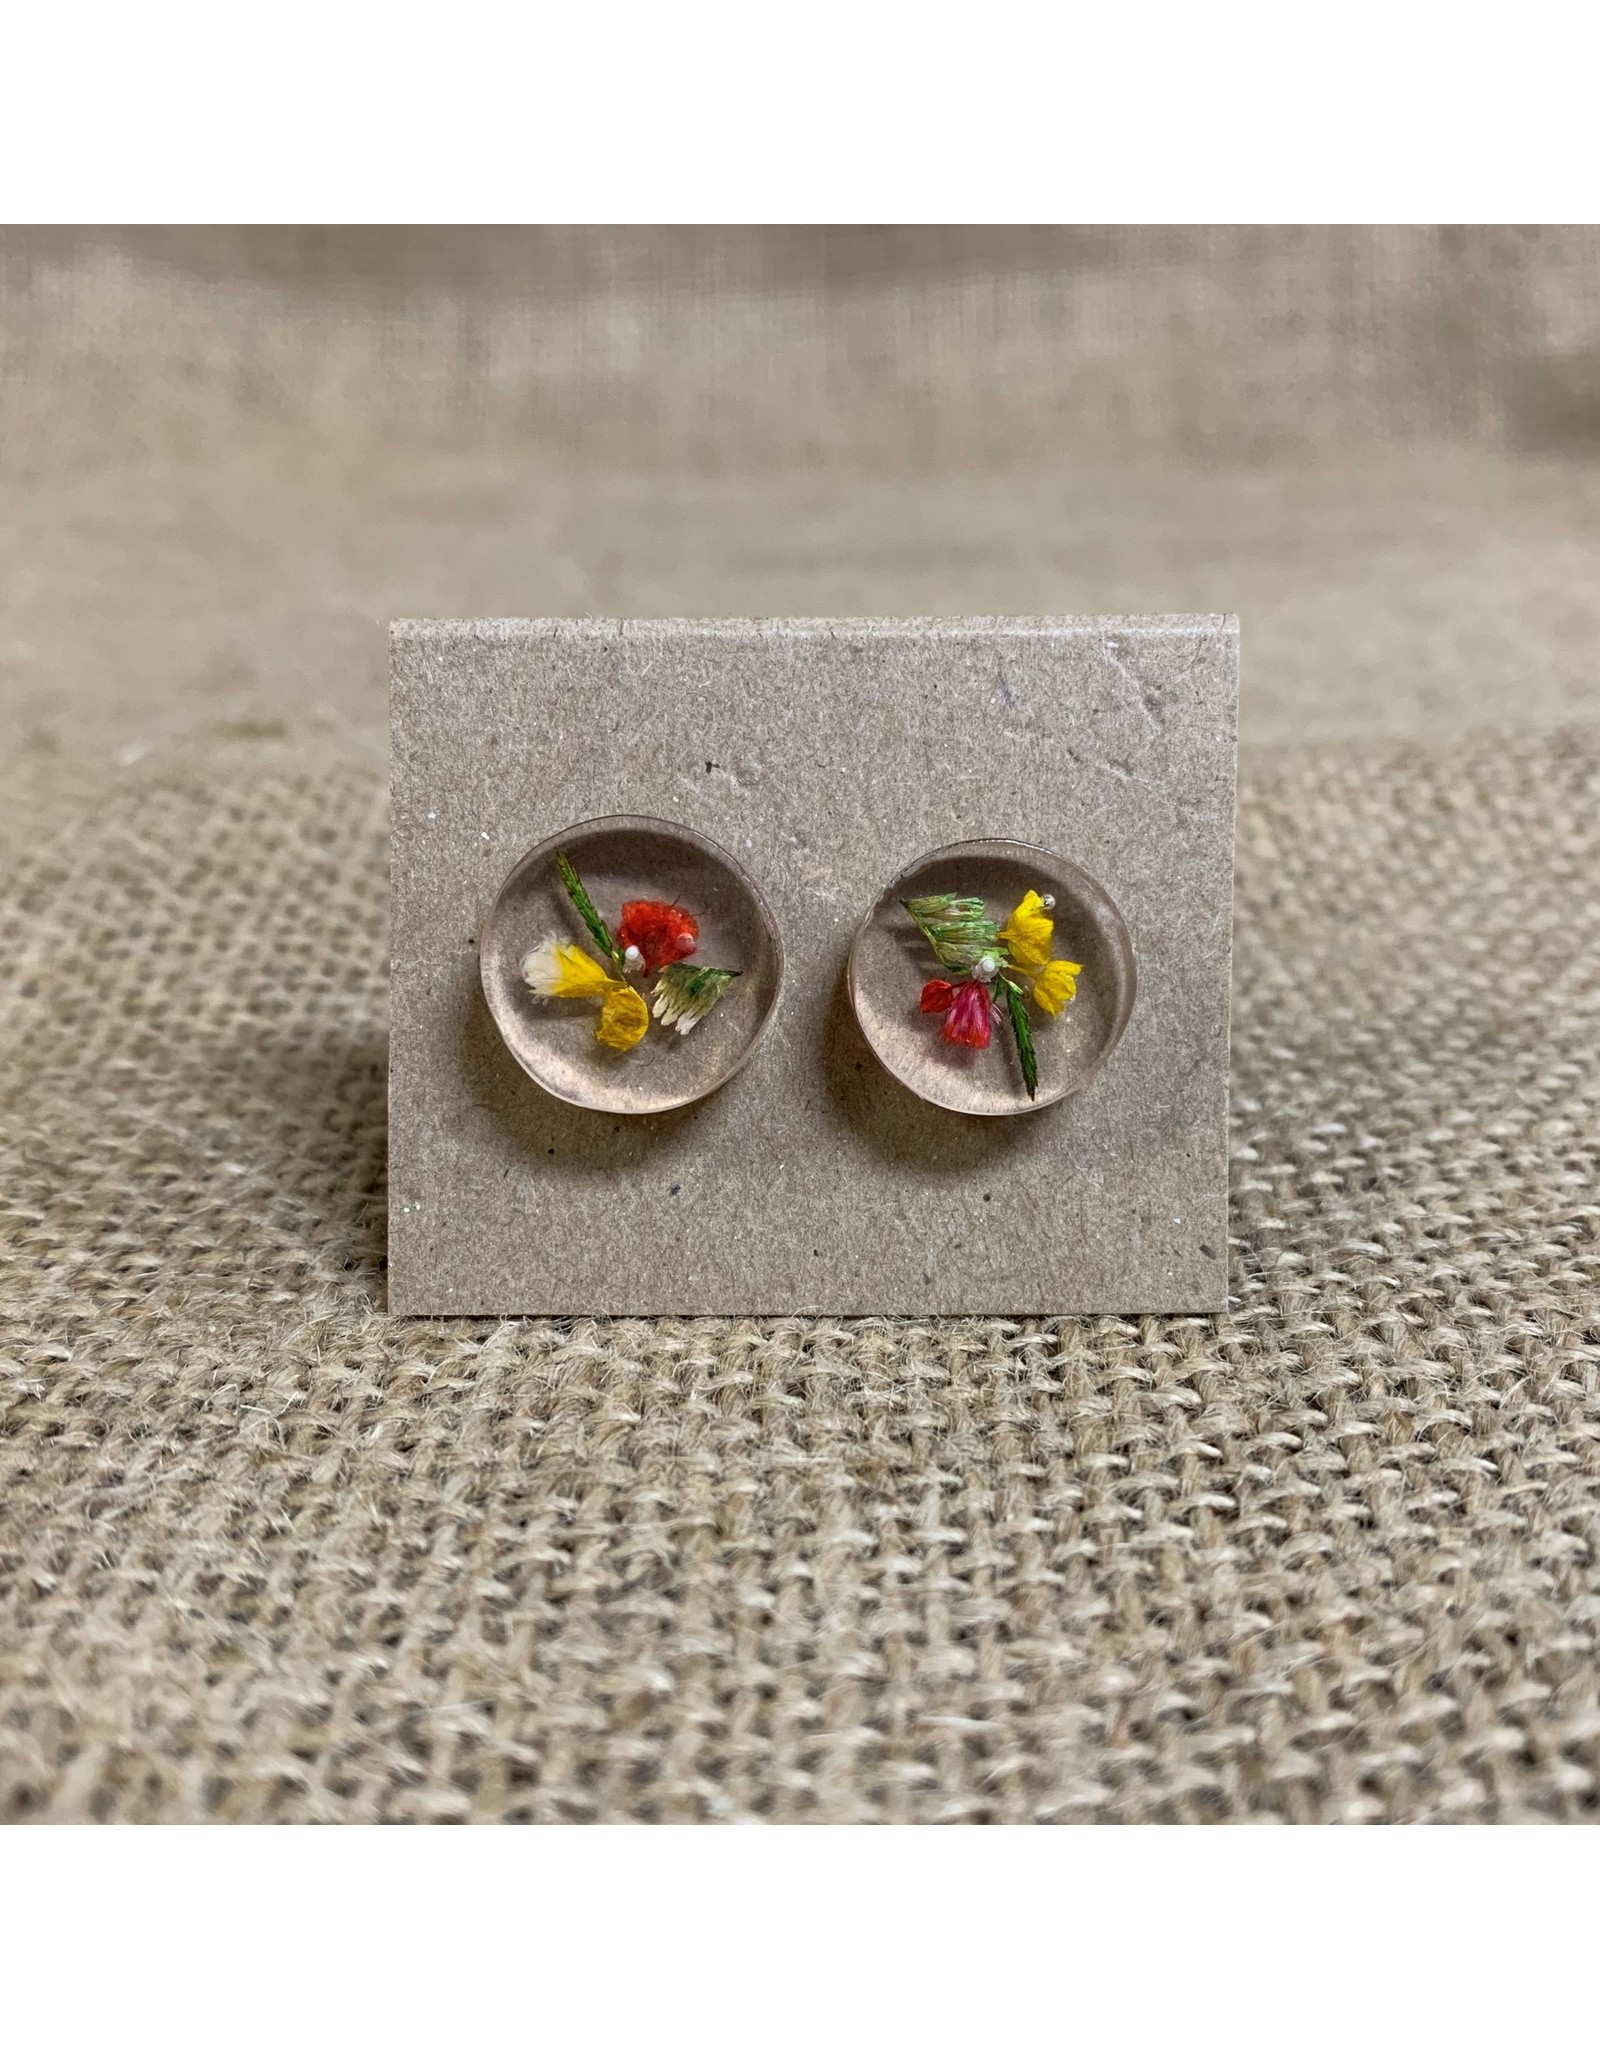 Ten Thousand Villages Round Earrings with Dried Flowers, Colombia